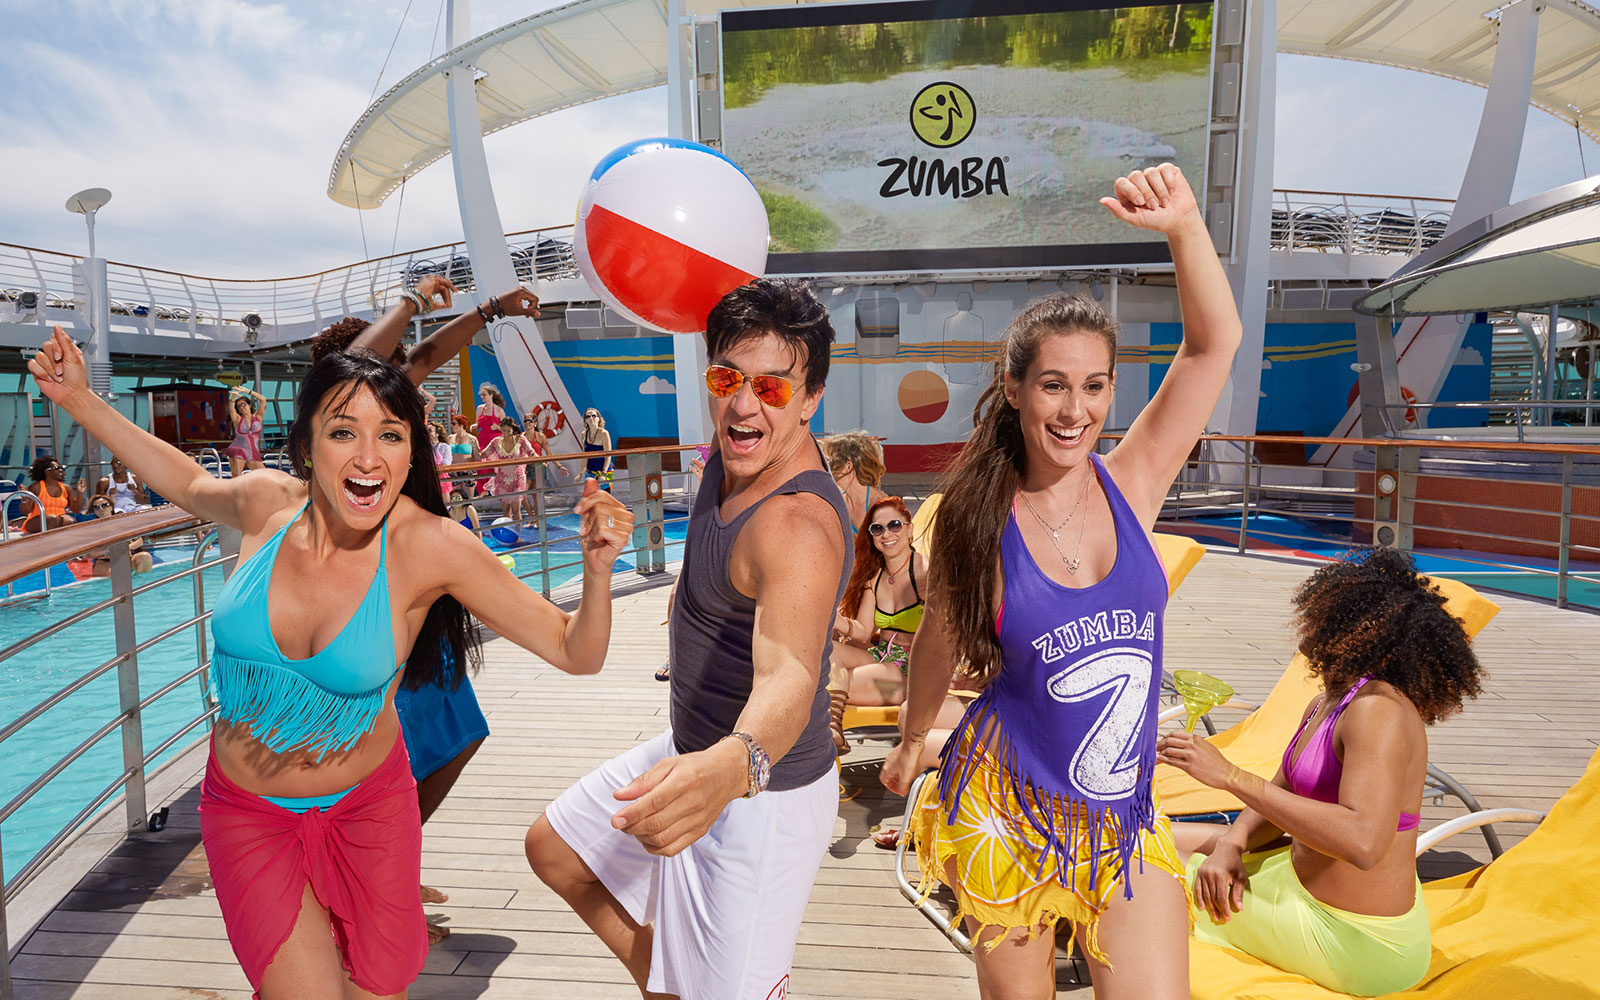 The First Zumba Cruise Will Set Sail in January 2016